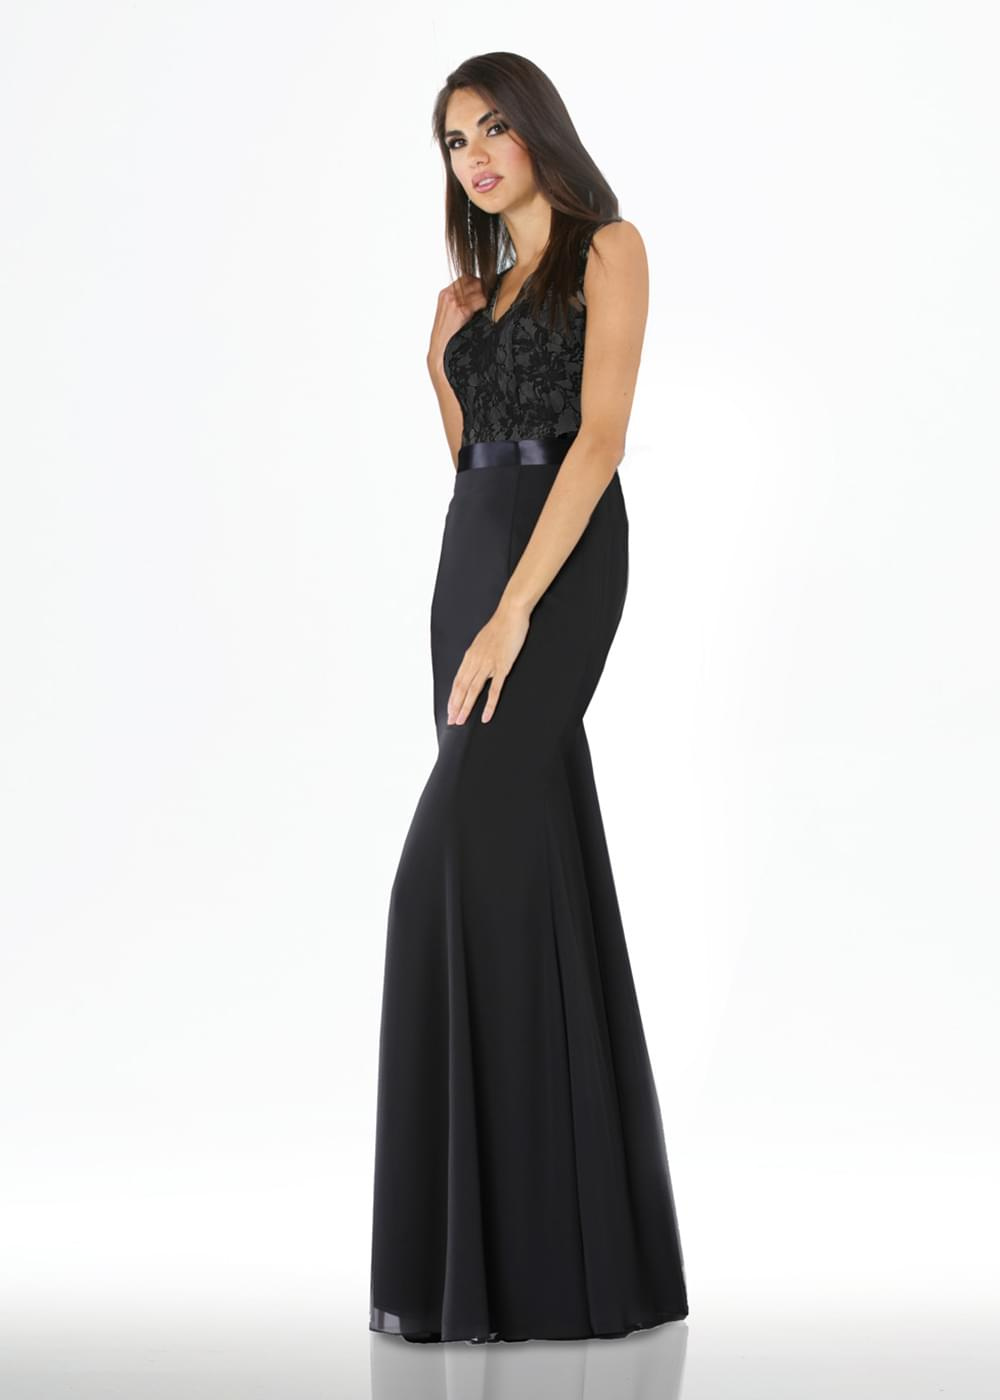 80034 Dresses with Straps By Ashdon